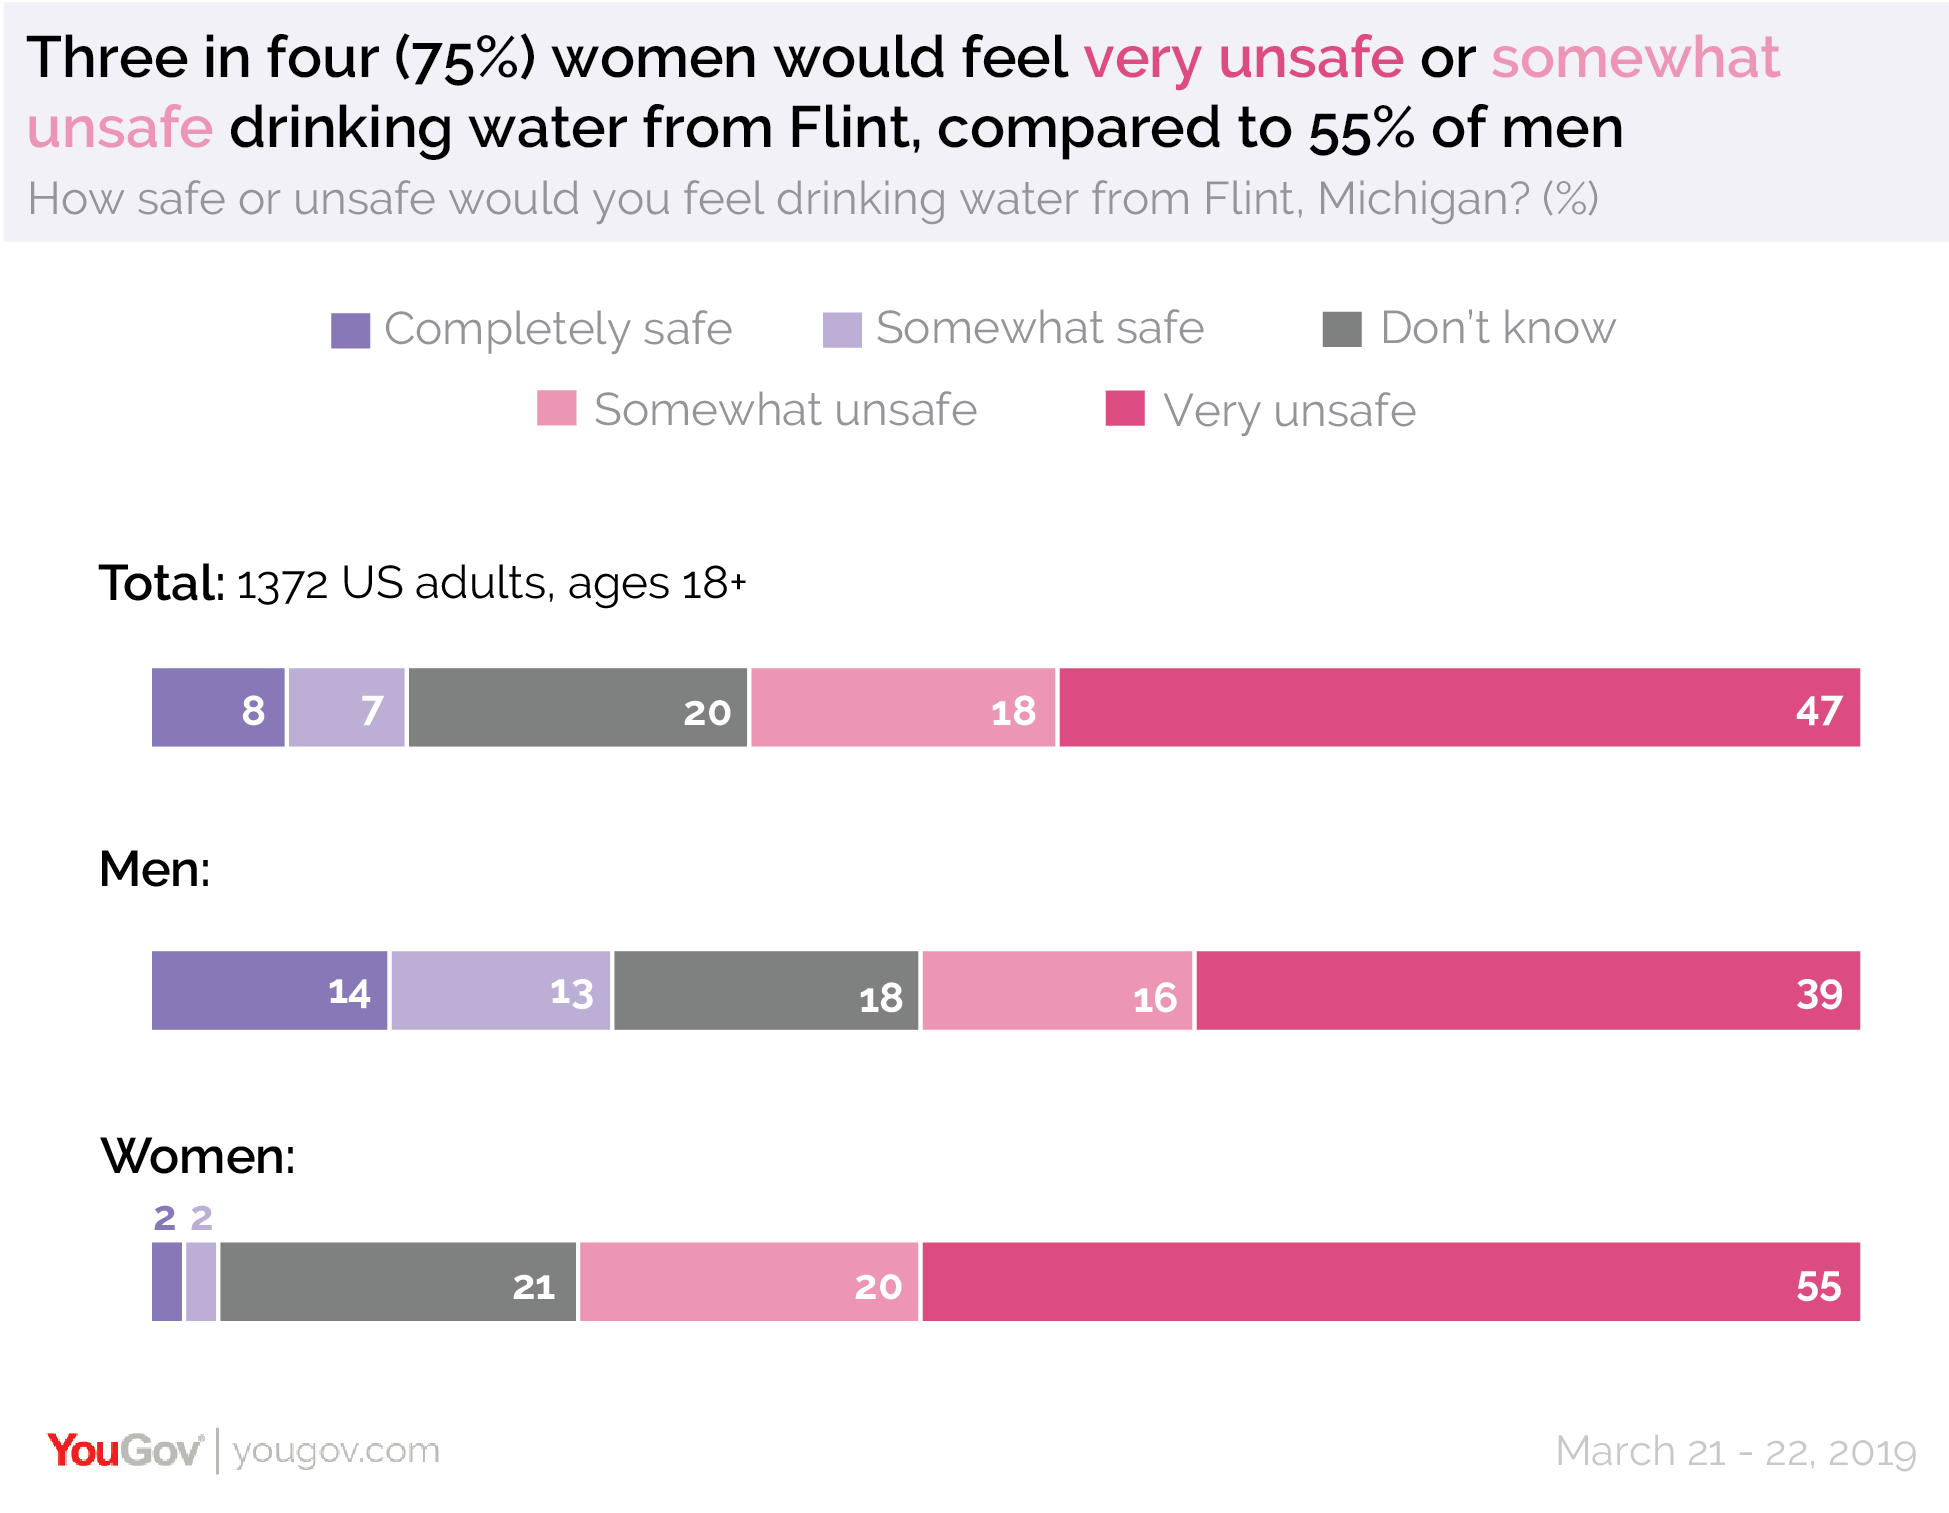 Three in four women would feel very unsafe or somewhat unsafe drinking water from Flint compared to 55% of men